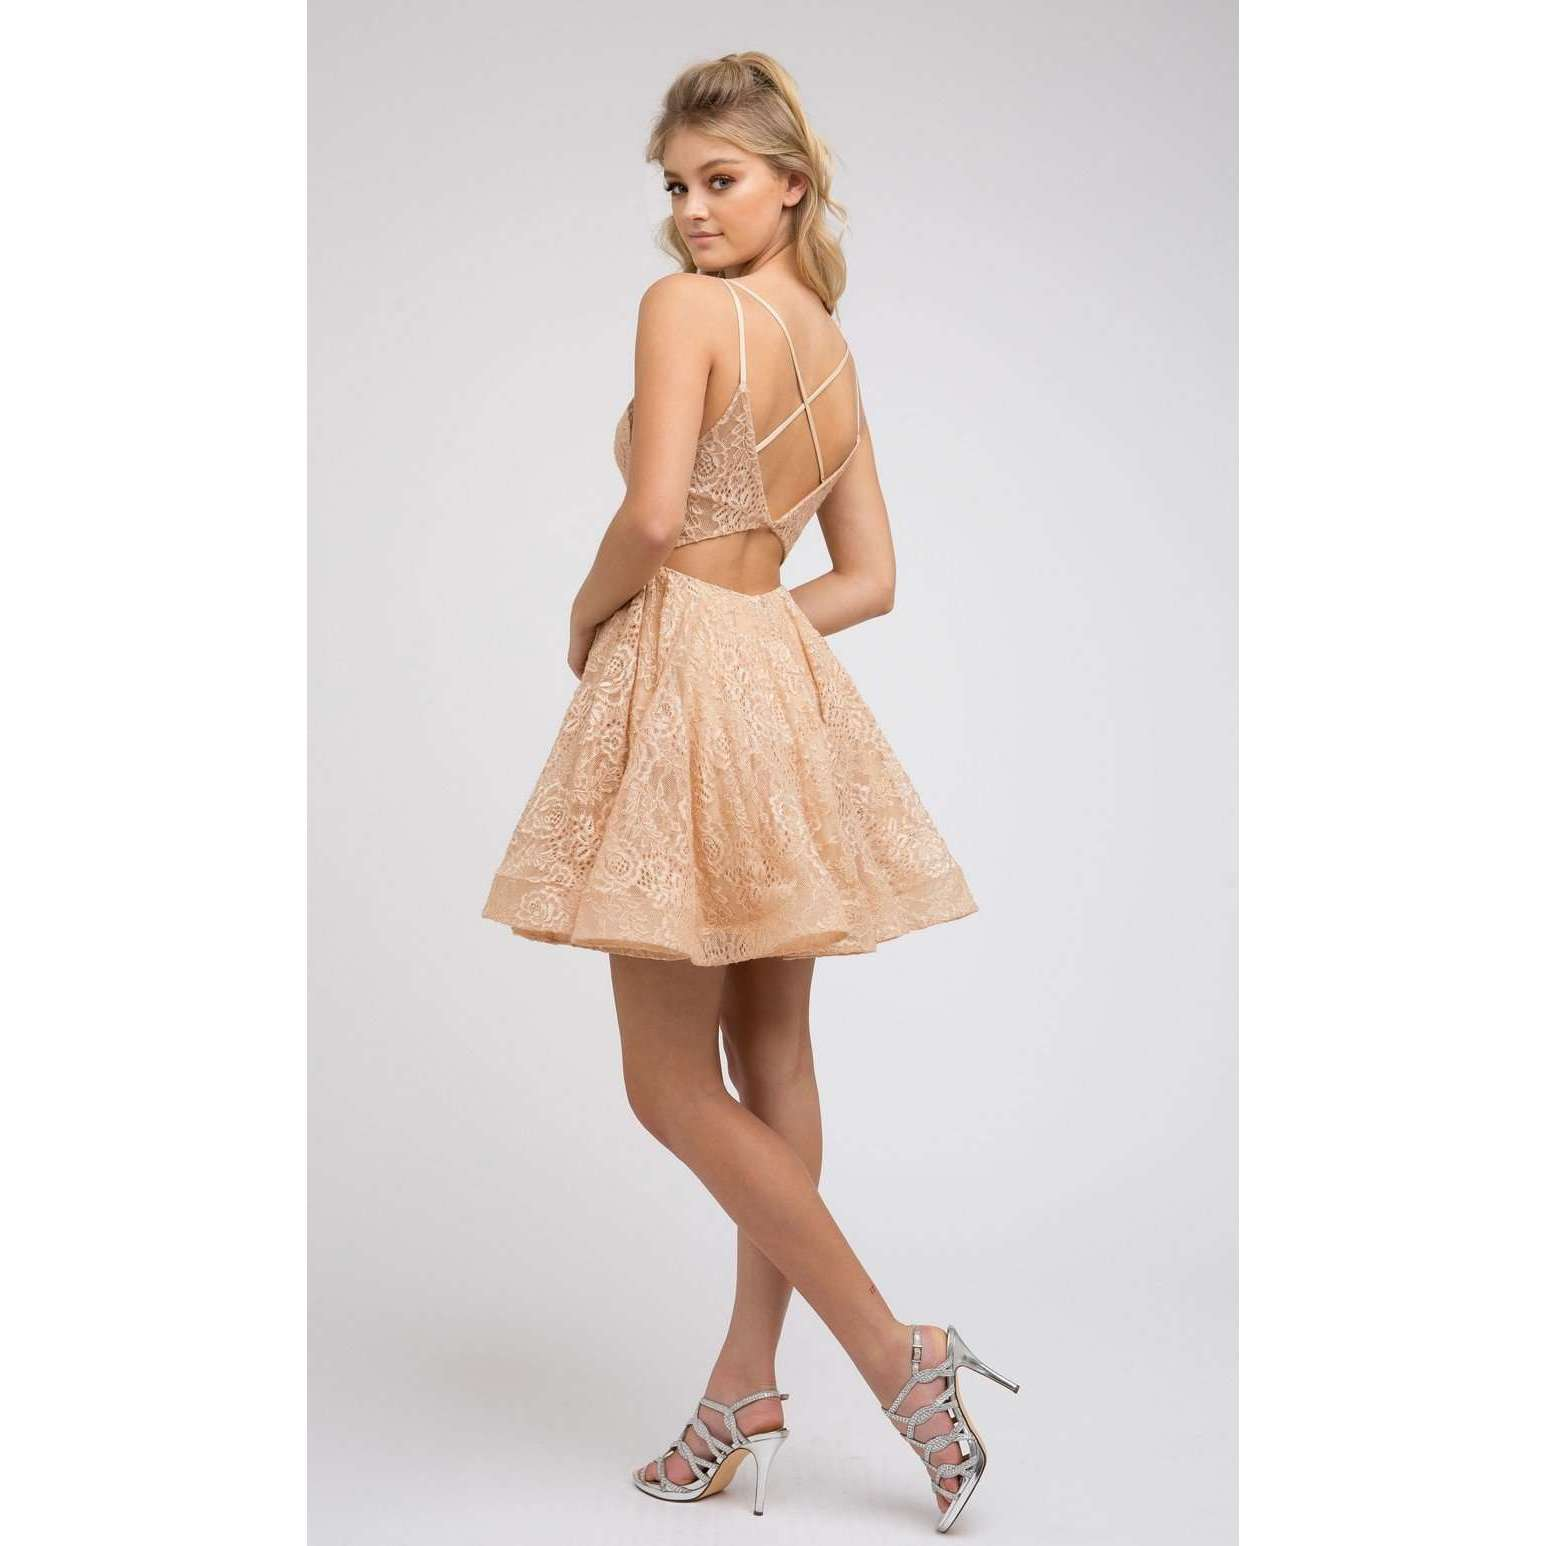 Glitter Lace Fit-and-Flare Homecoming Short Dress 842 - Julietdresses